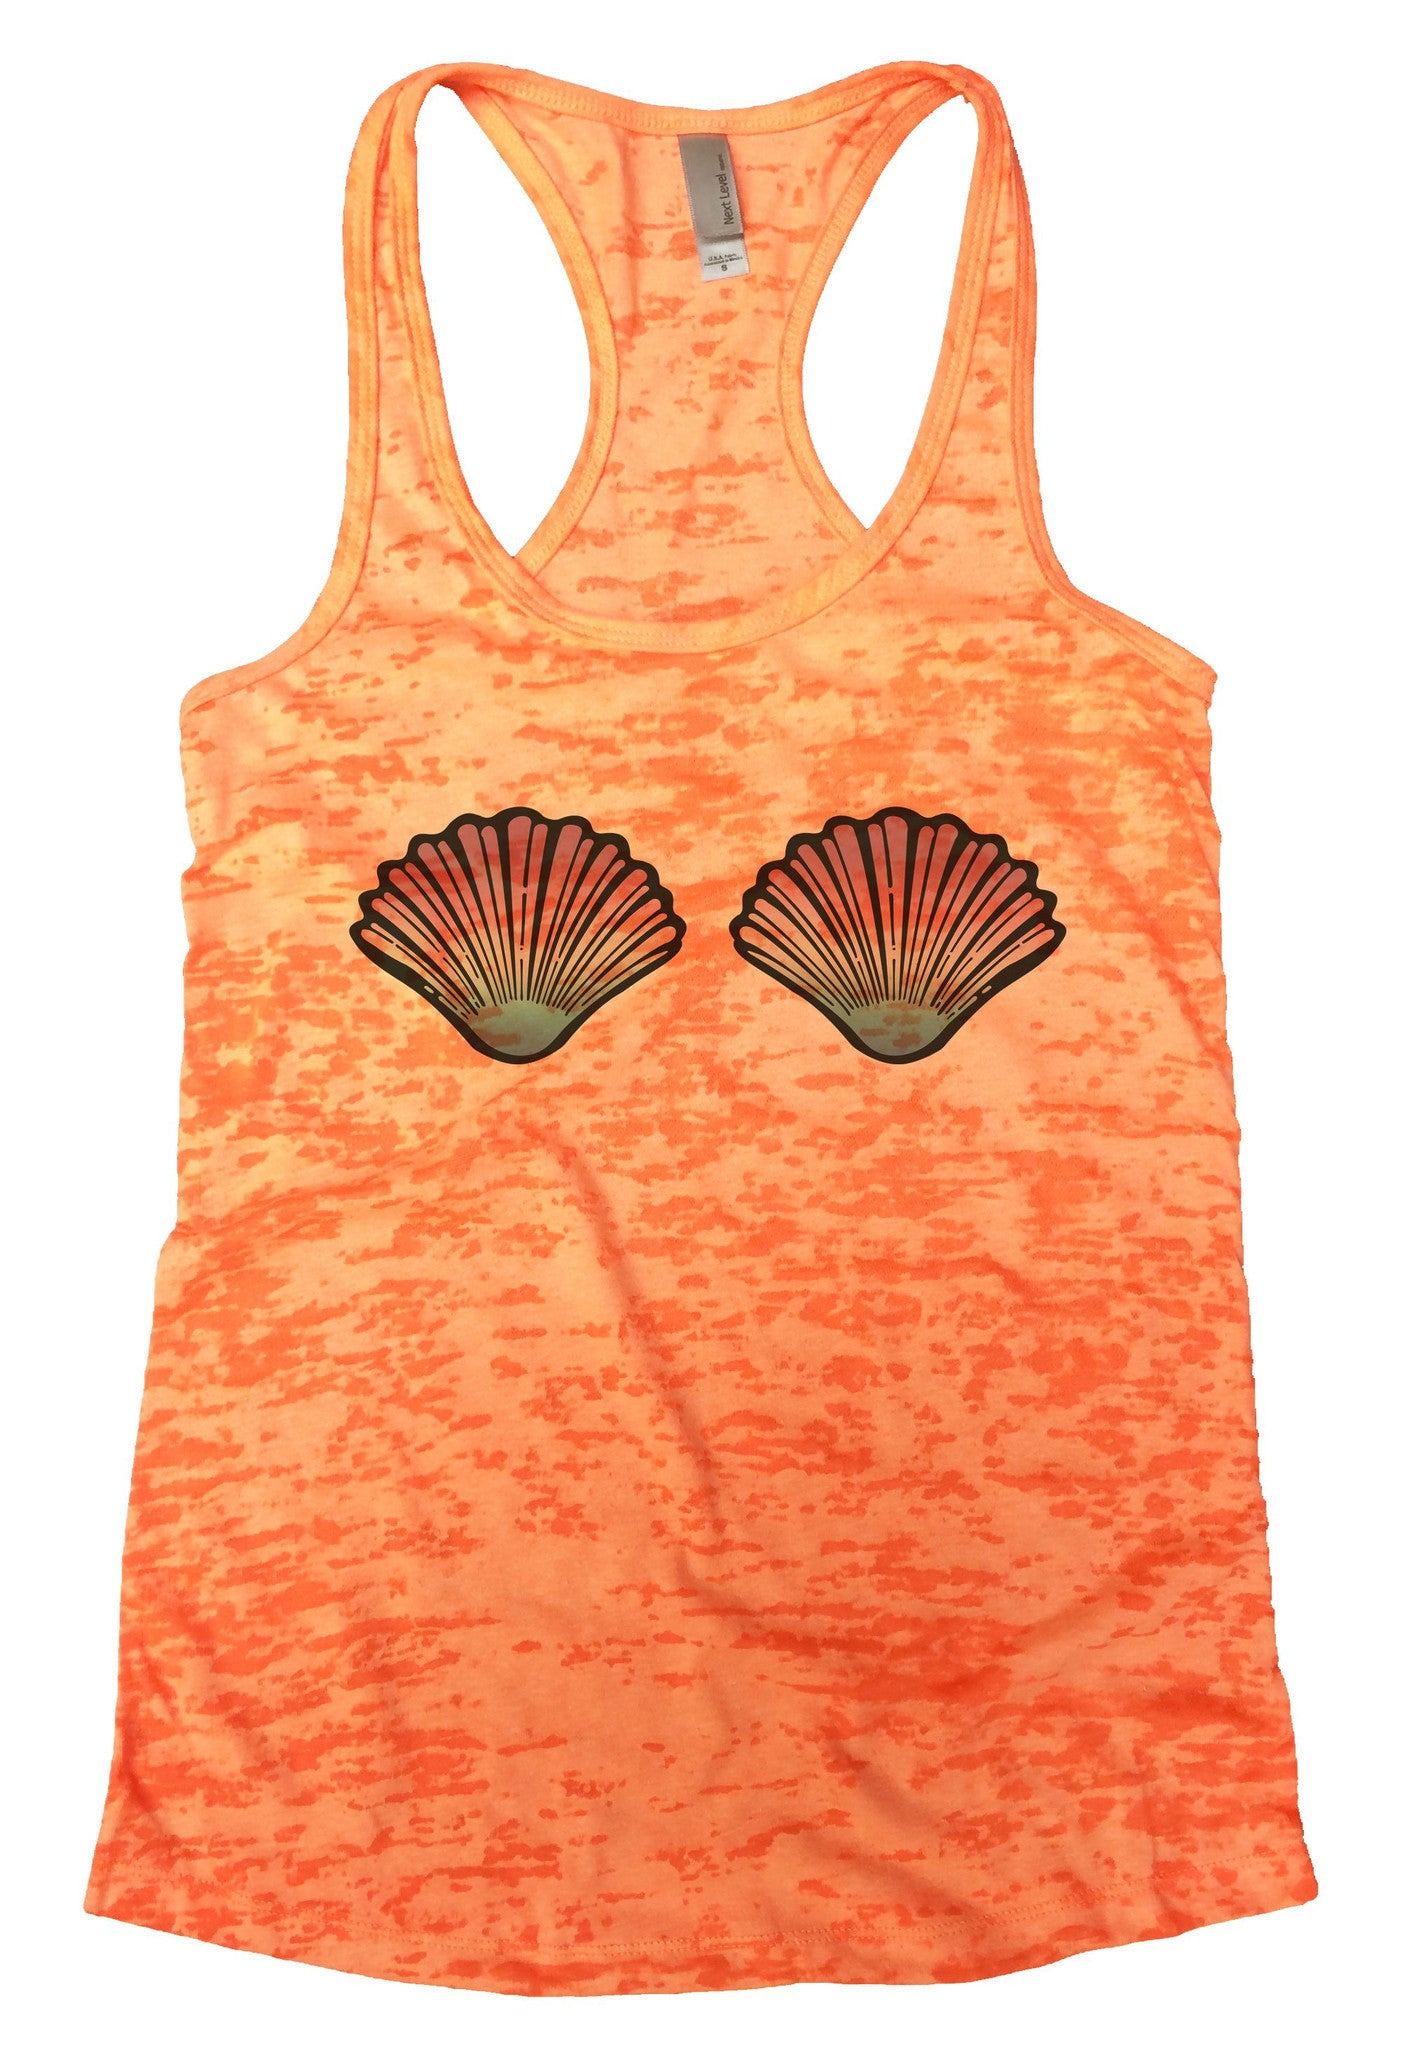 Shell Burnout Tank Top By BurnoutTankTops.com - 1080 - Funny Shirts Tank Tops Burnouts and Triblends  - 2